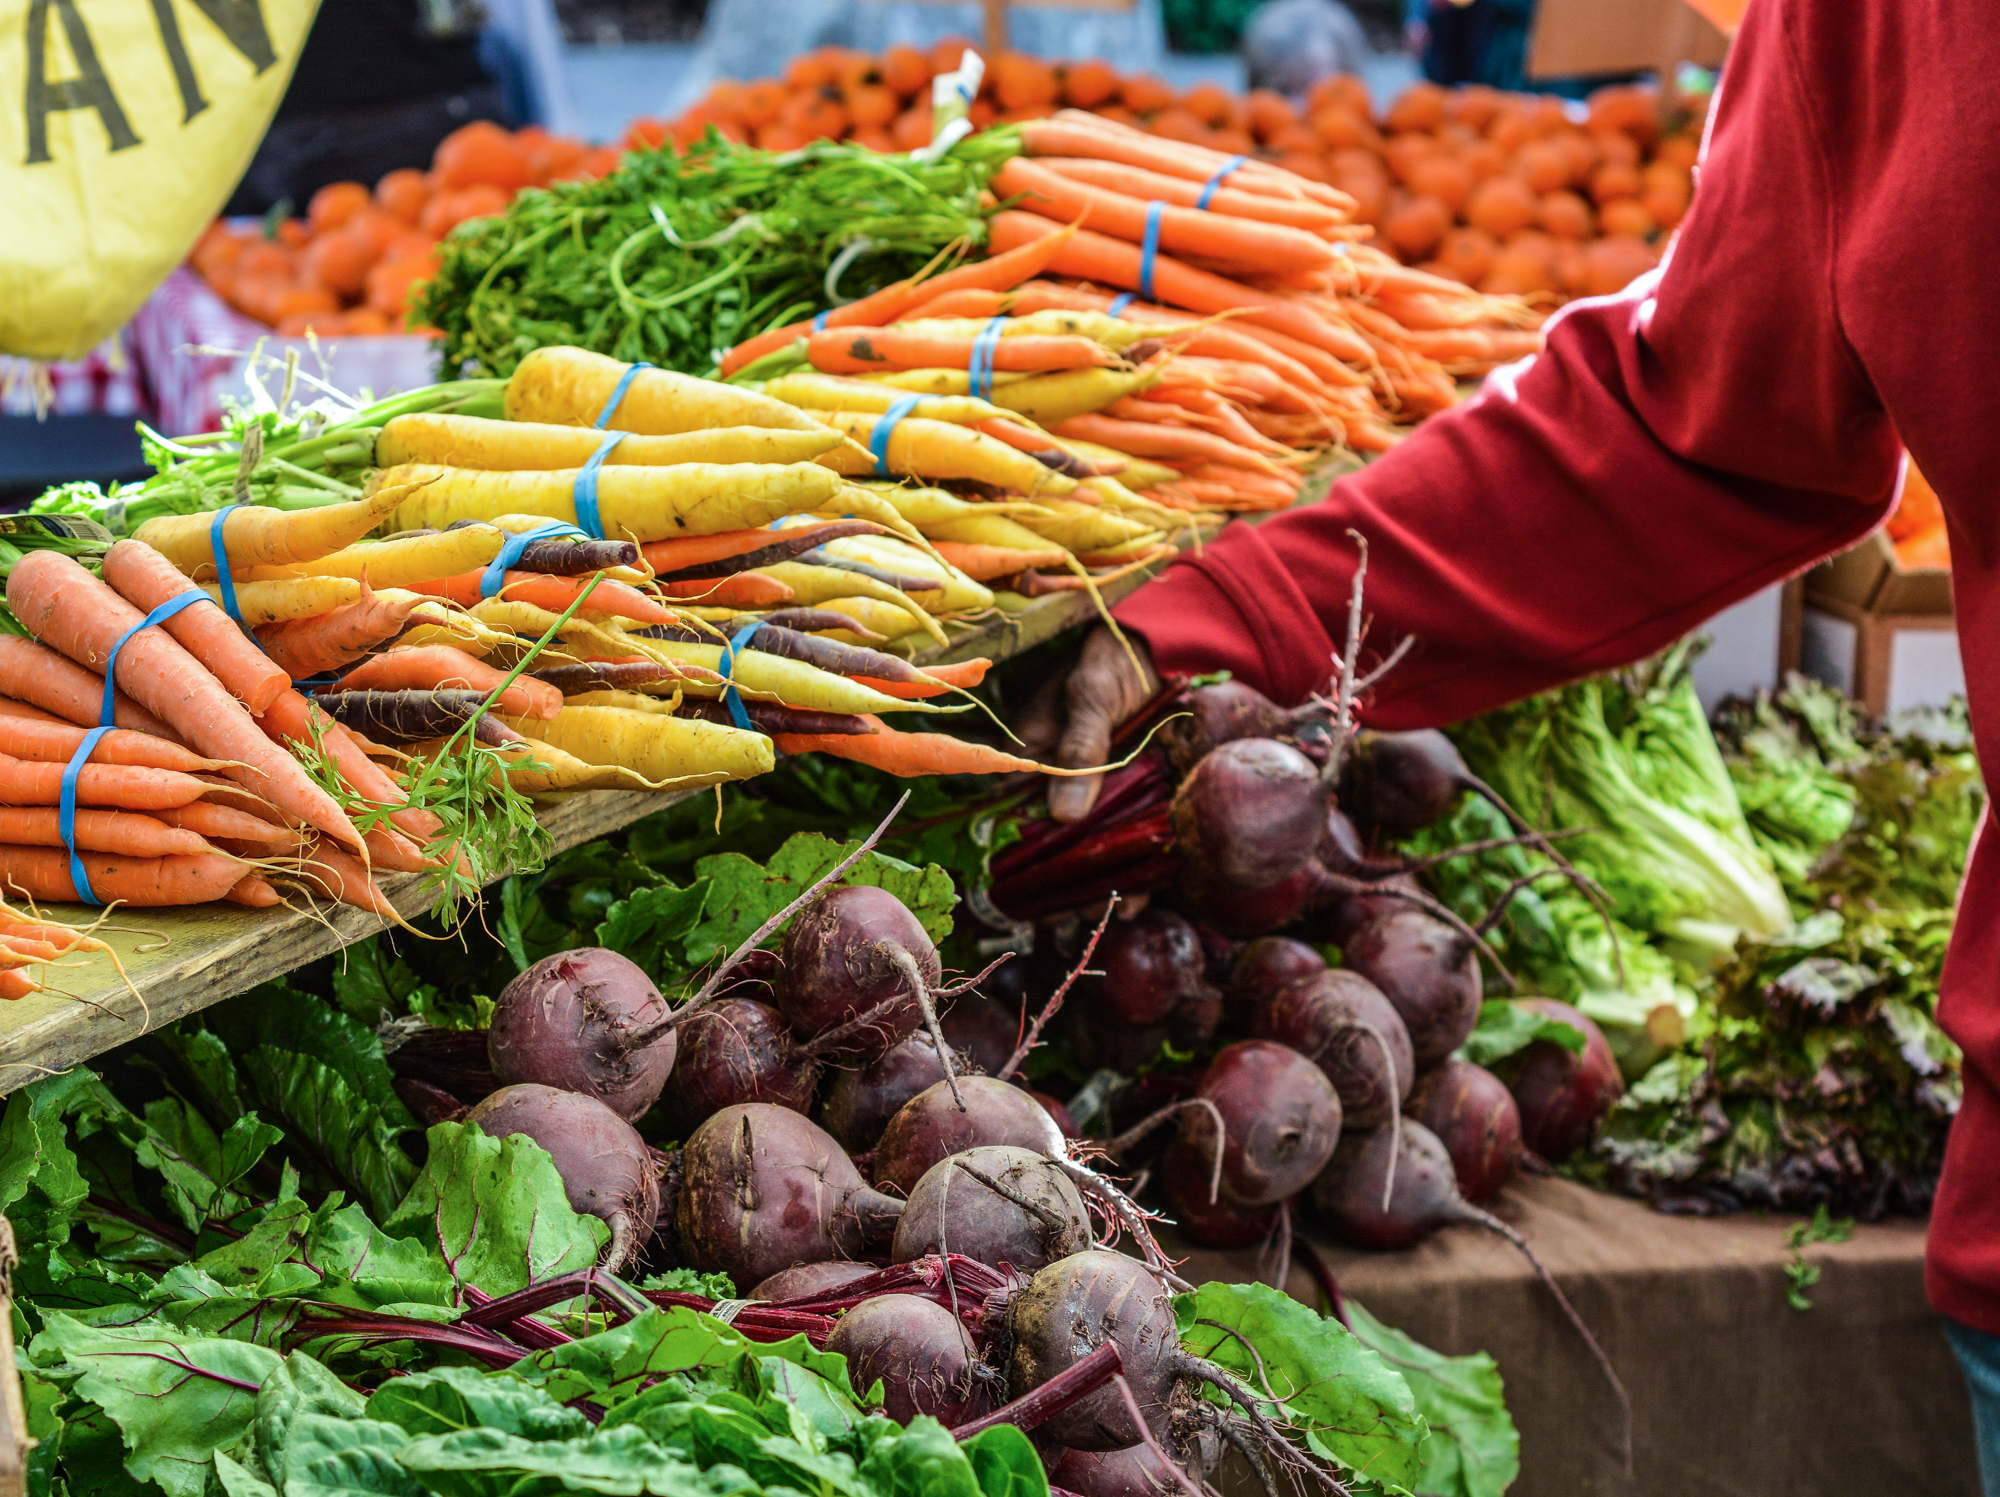 How to Shop Safely at the Farmer's Markets During Coronavirus